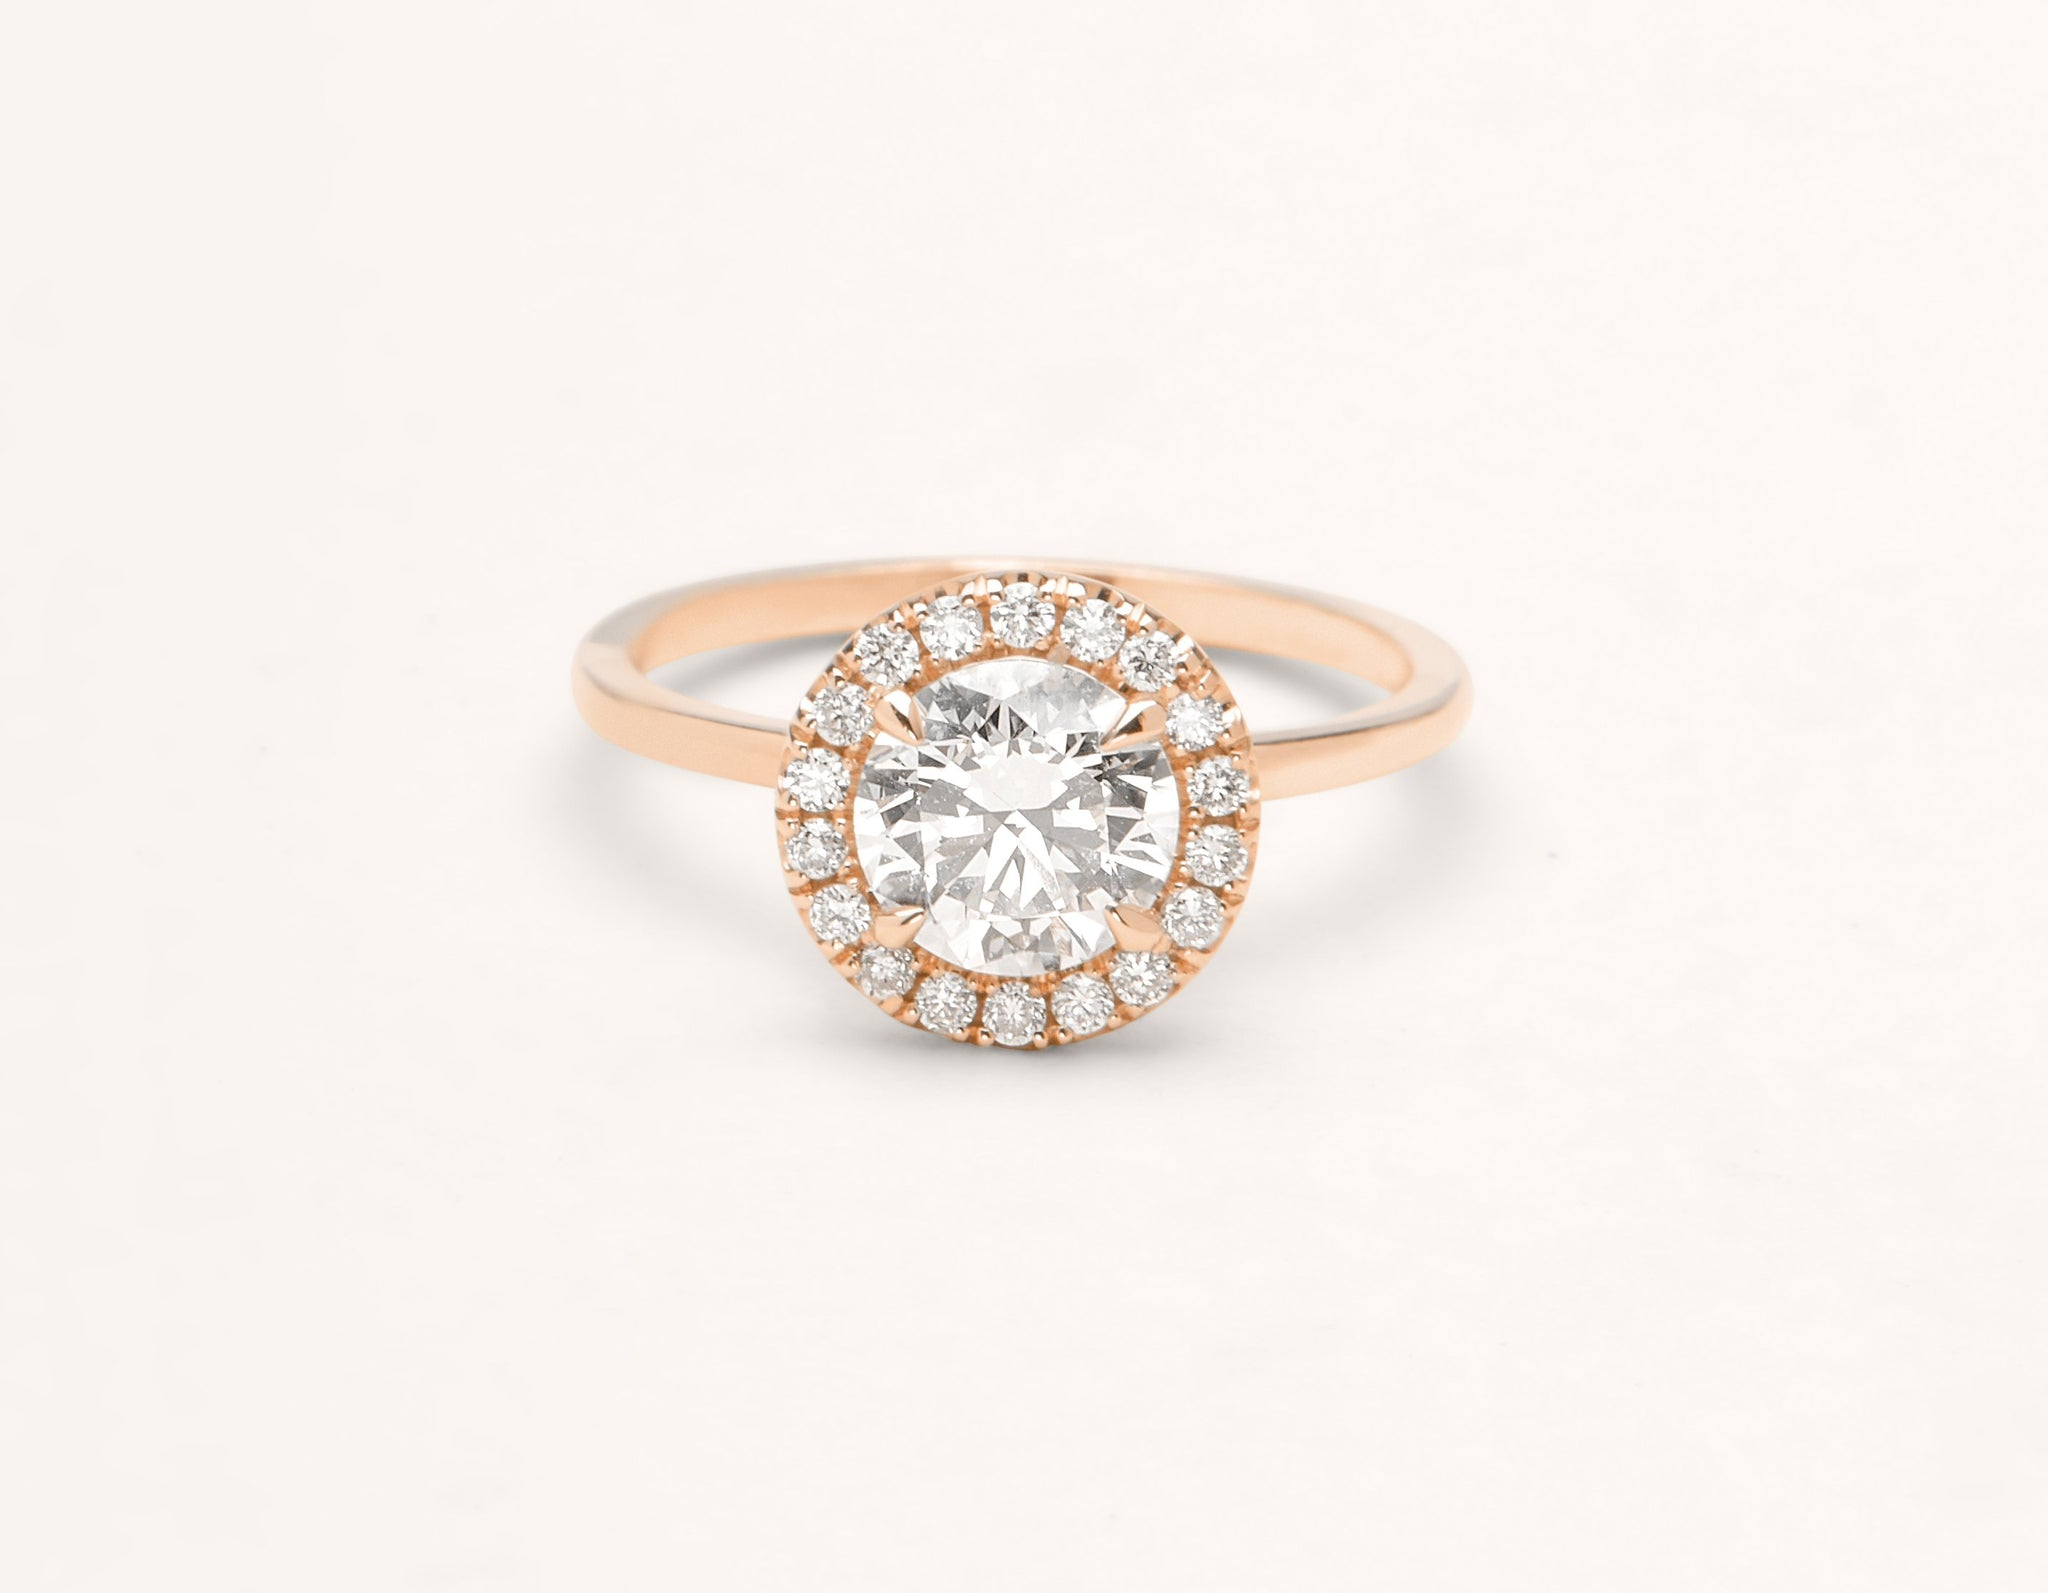 Vrai & Oro 18k solid rose gold Diamond engagement ring The Halo simple classic band